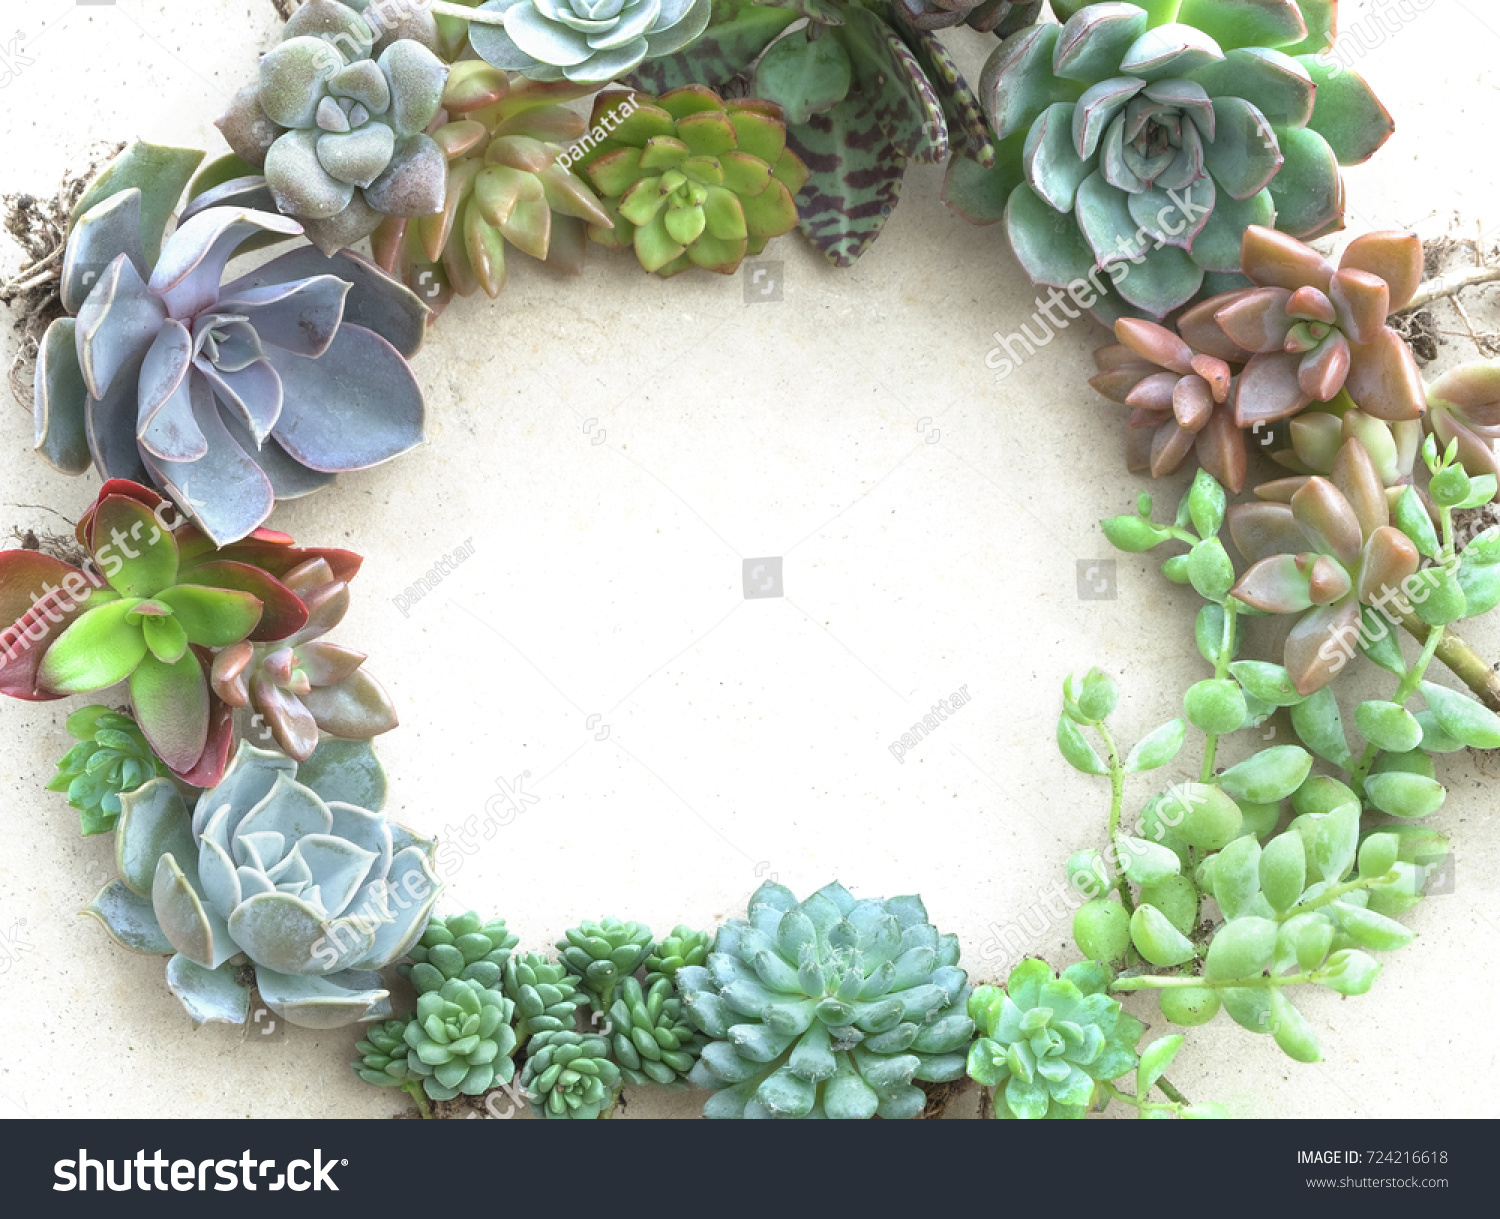 Colorful Flowering Succulent Plants Frame Background Stock Photo ...